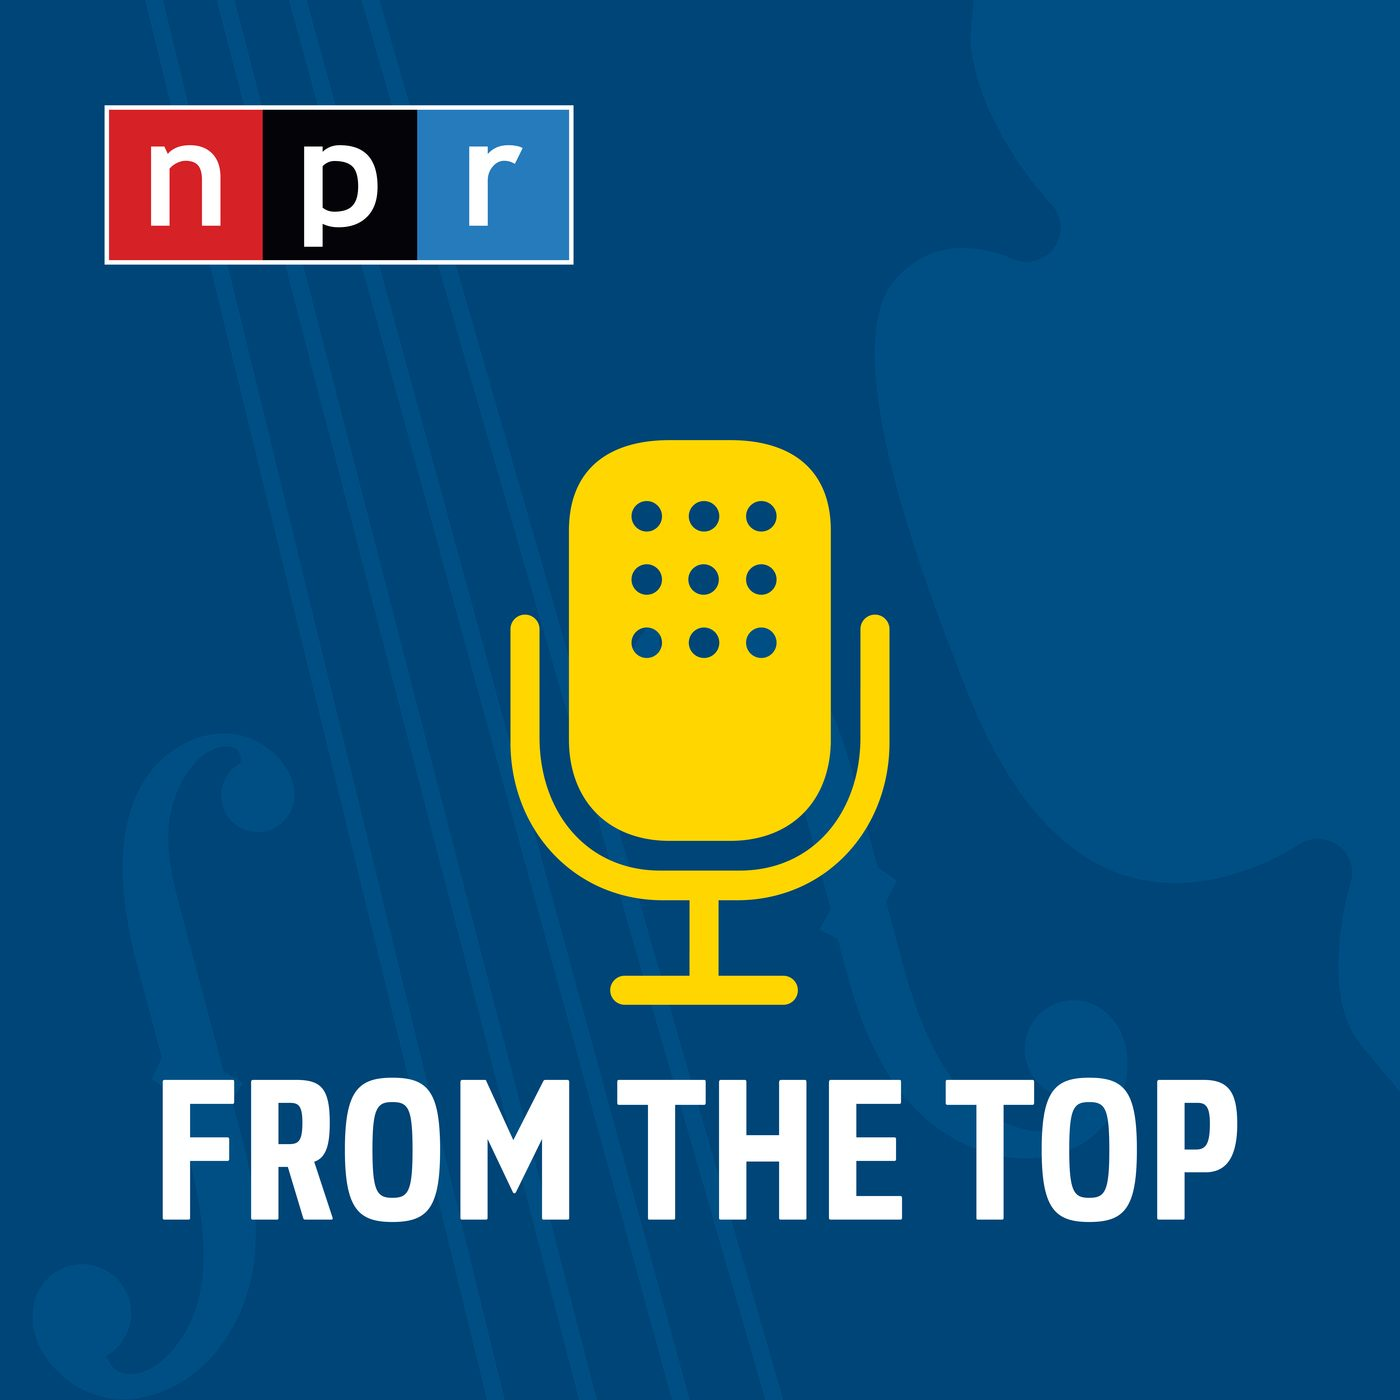 Npr Podcastlogo: From The Top